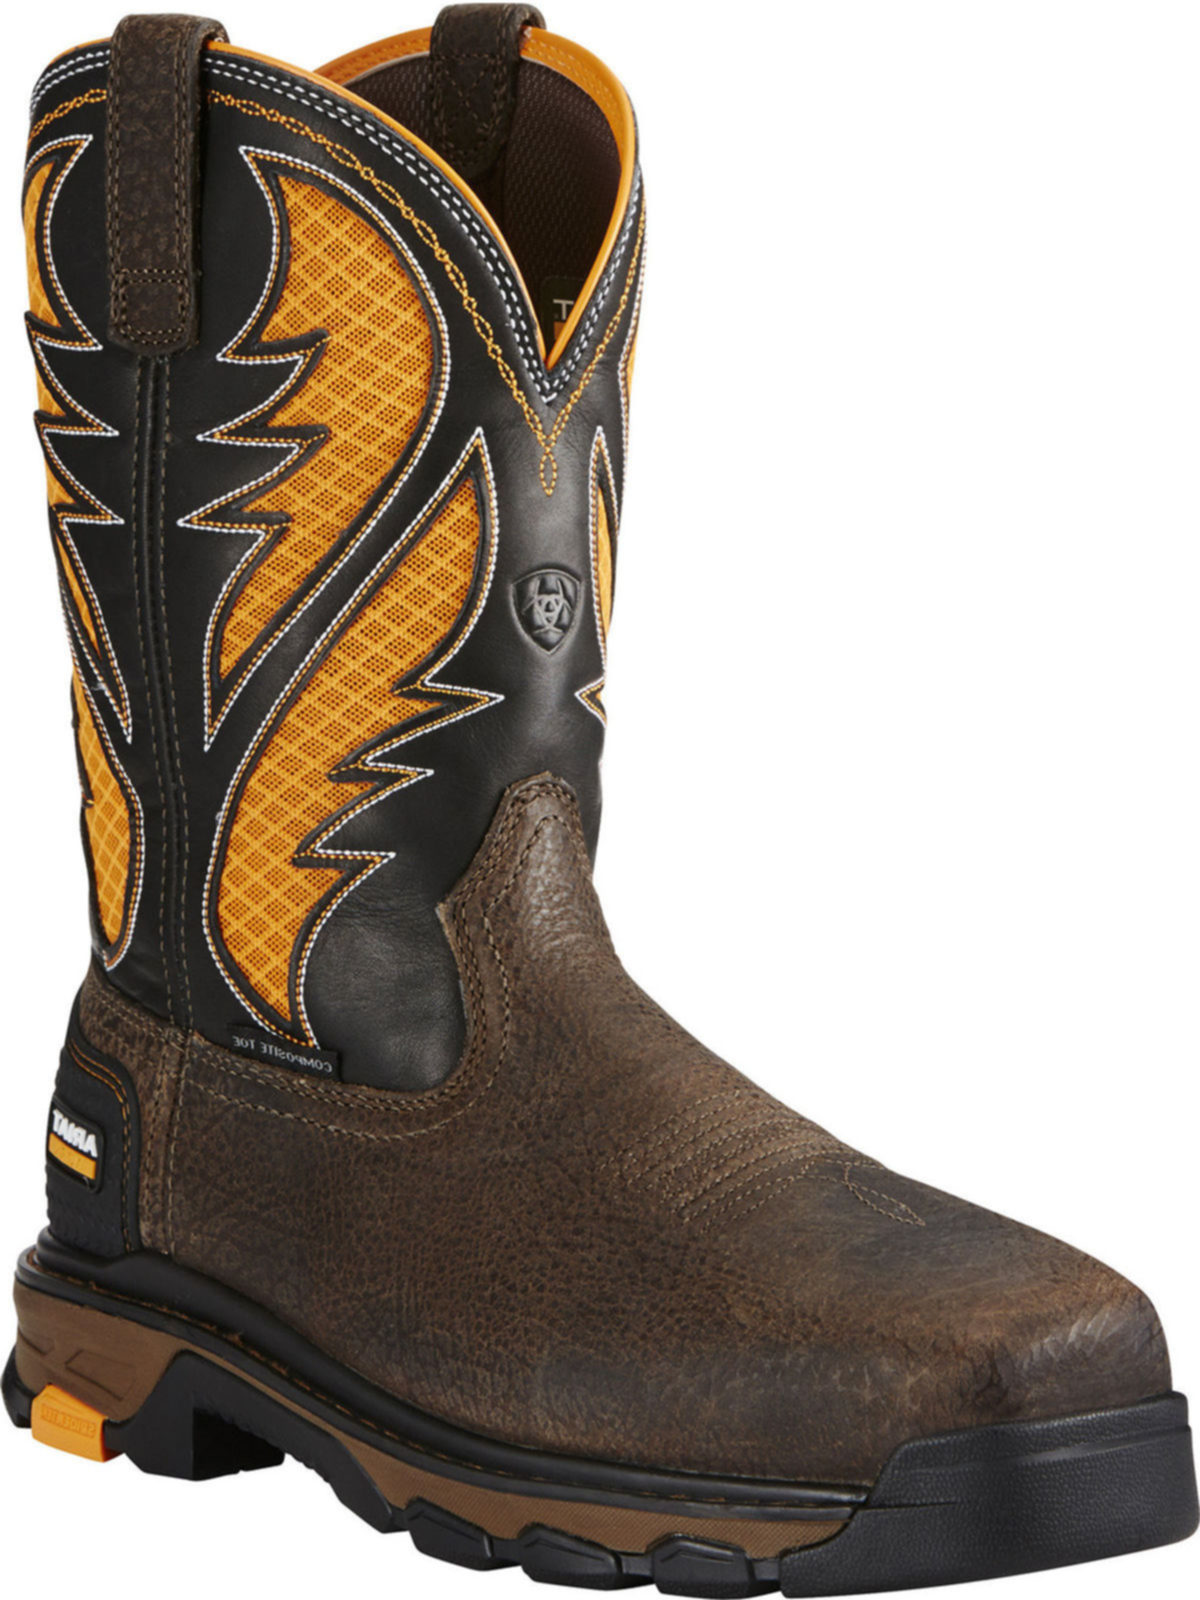 Bootamerica Ariat Mens Intrepid Venttek Composite Toe